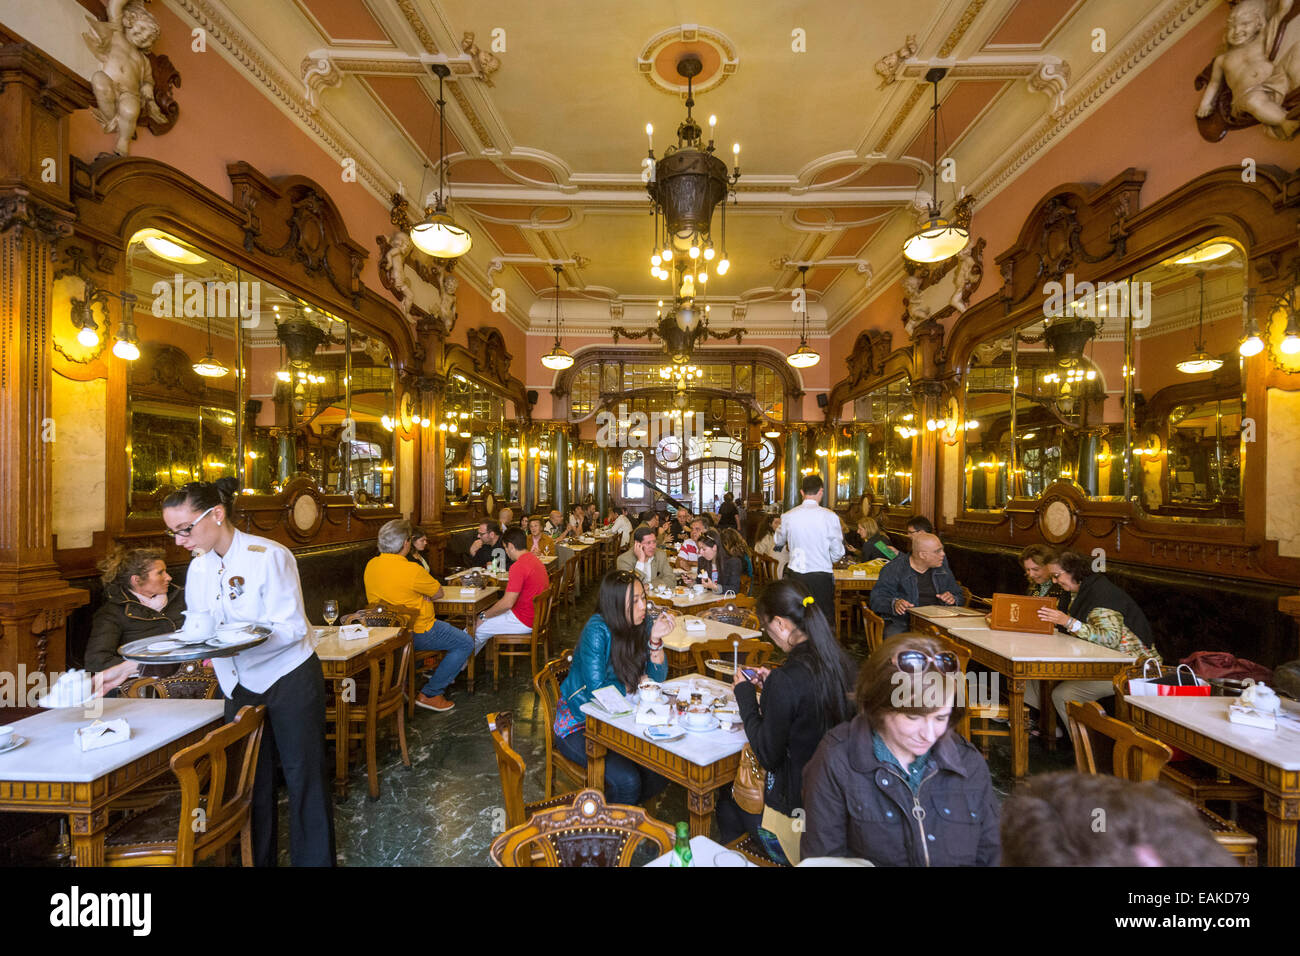 Café Majestic, Art Nouveau cafe, tavern, restaurant dining, Porto, District of Porto, Portugal - Stock Image